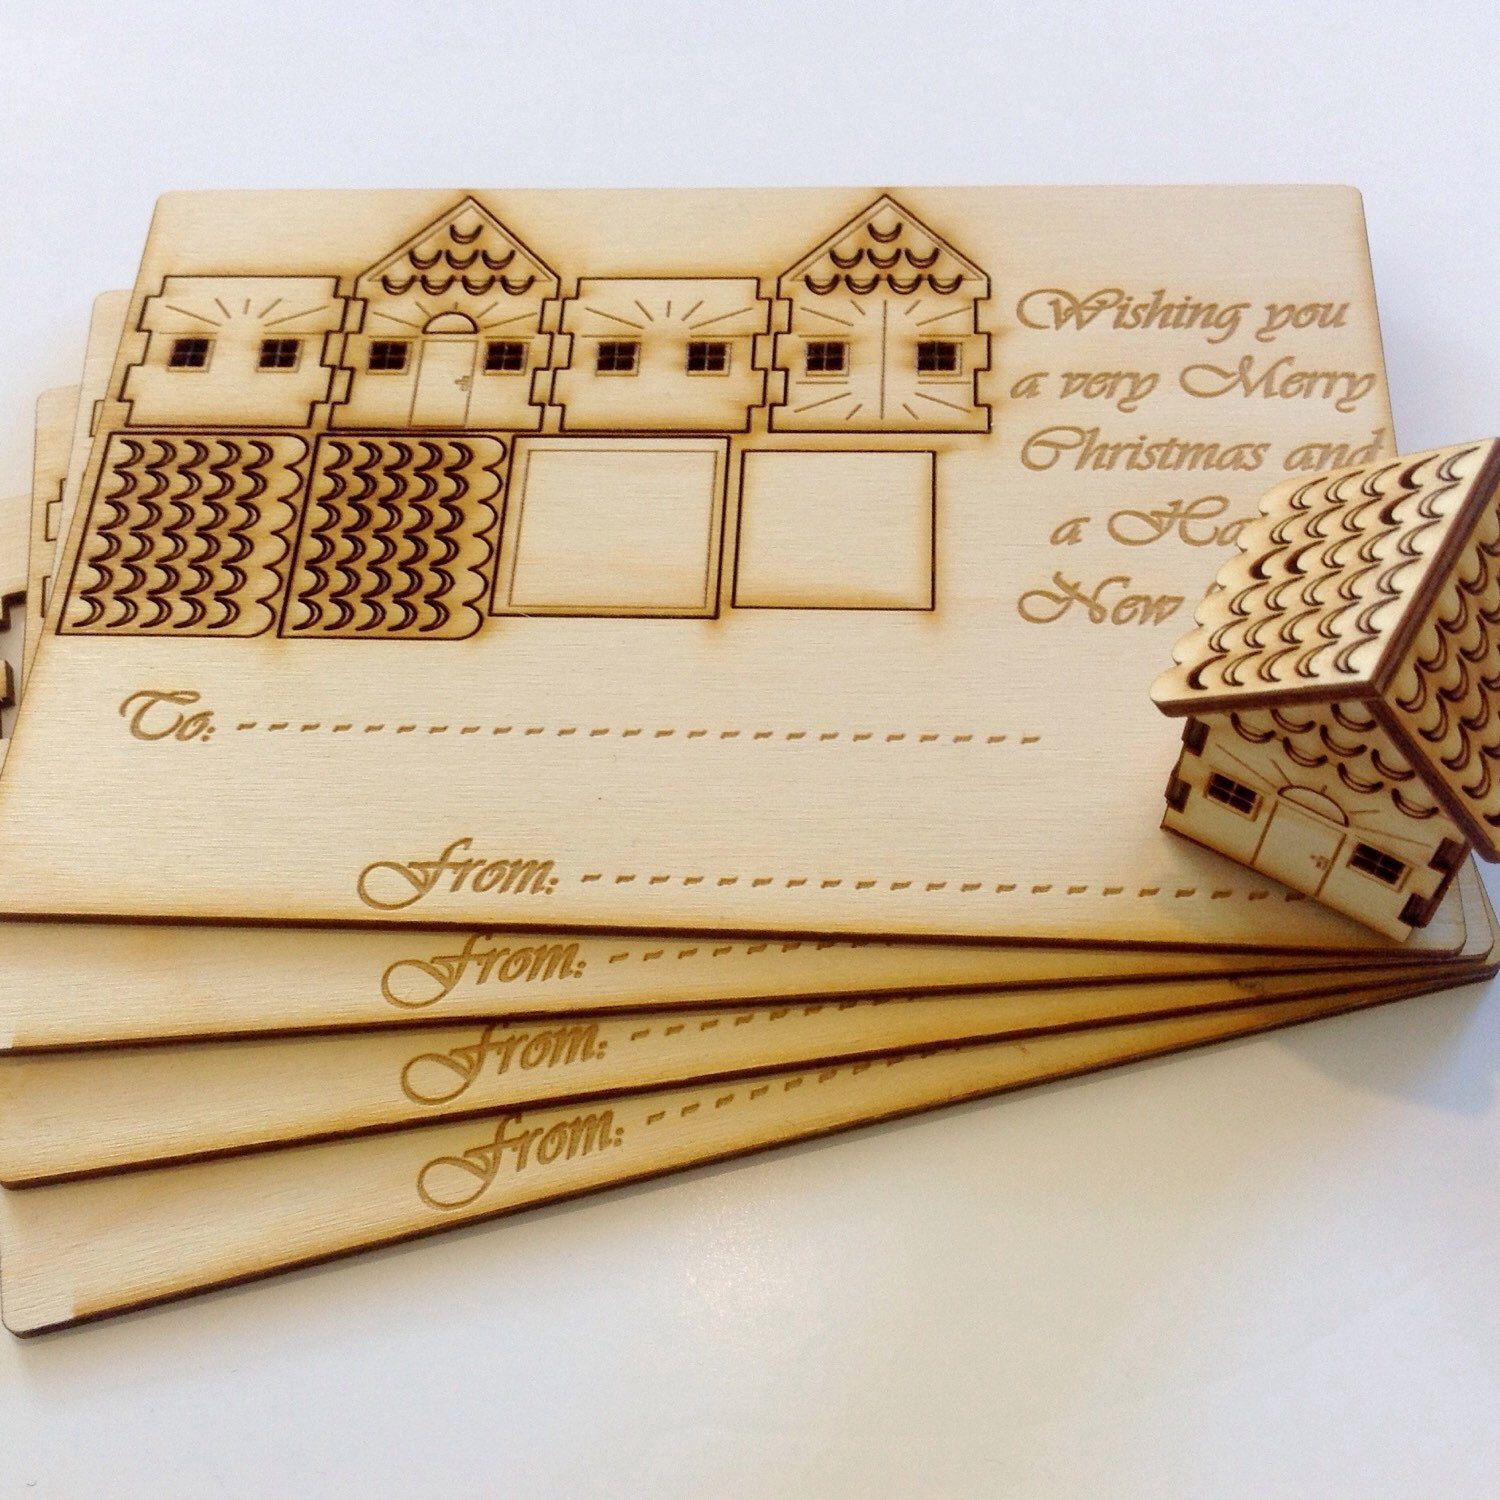 Cleaver wooden Christmas cards | Lasercut | Corte laser ...